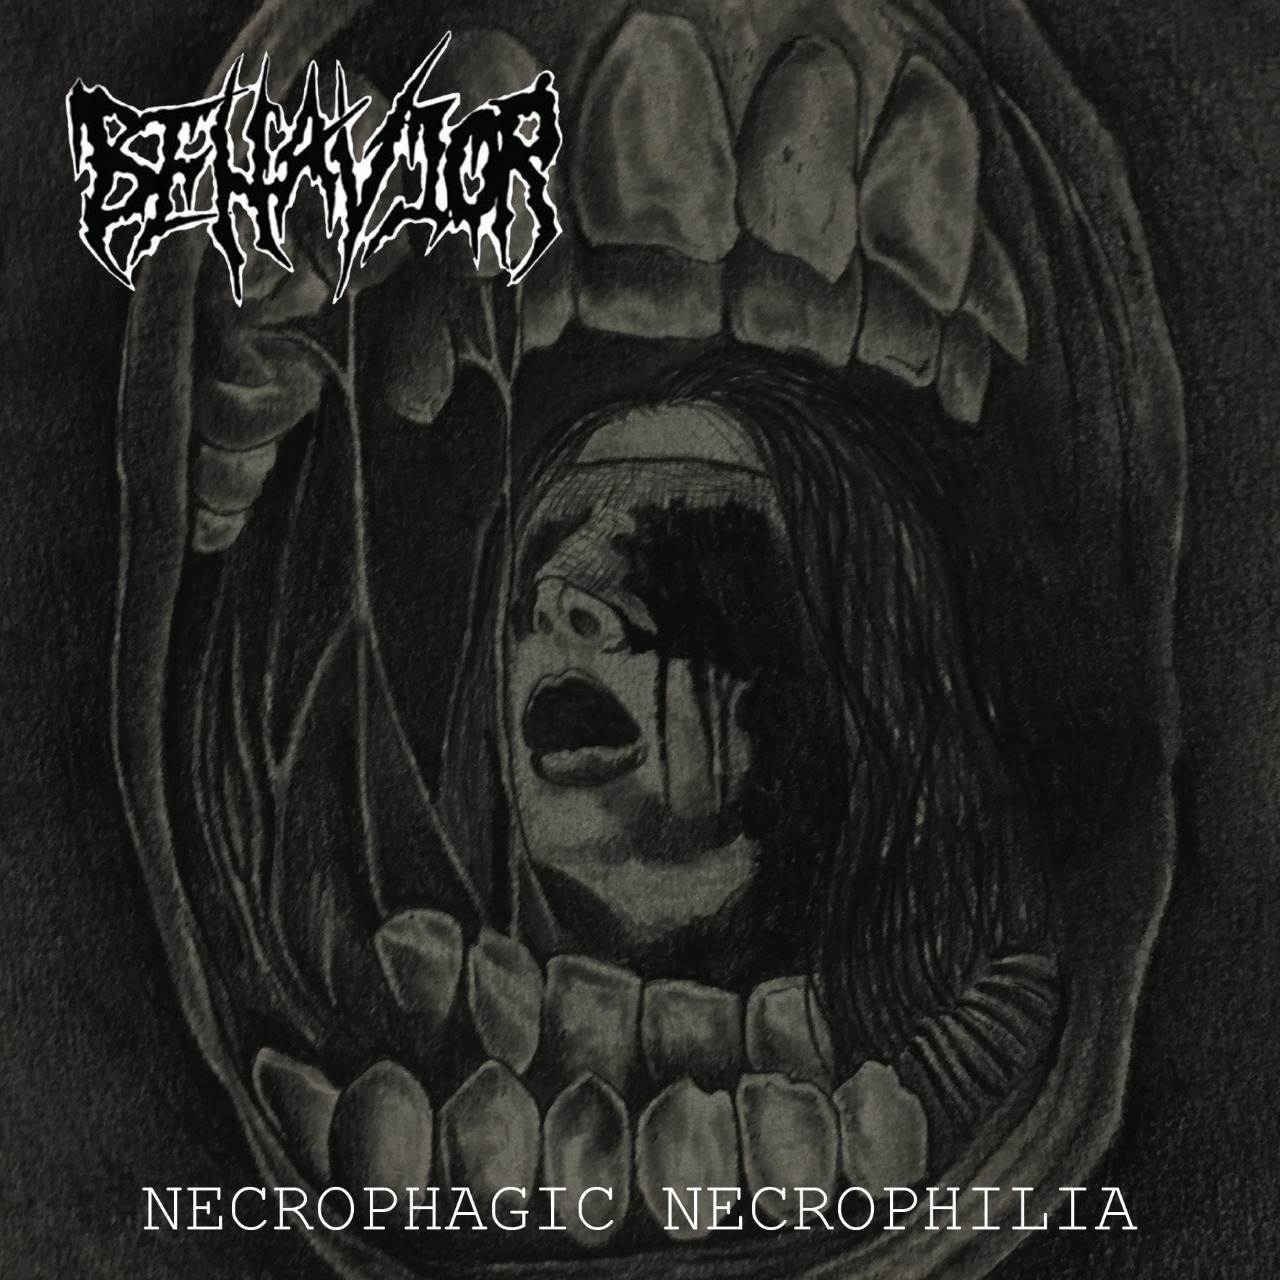 BEHAVIOR_Necrophagic_Necrophilia_Cover